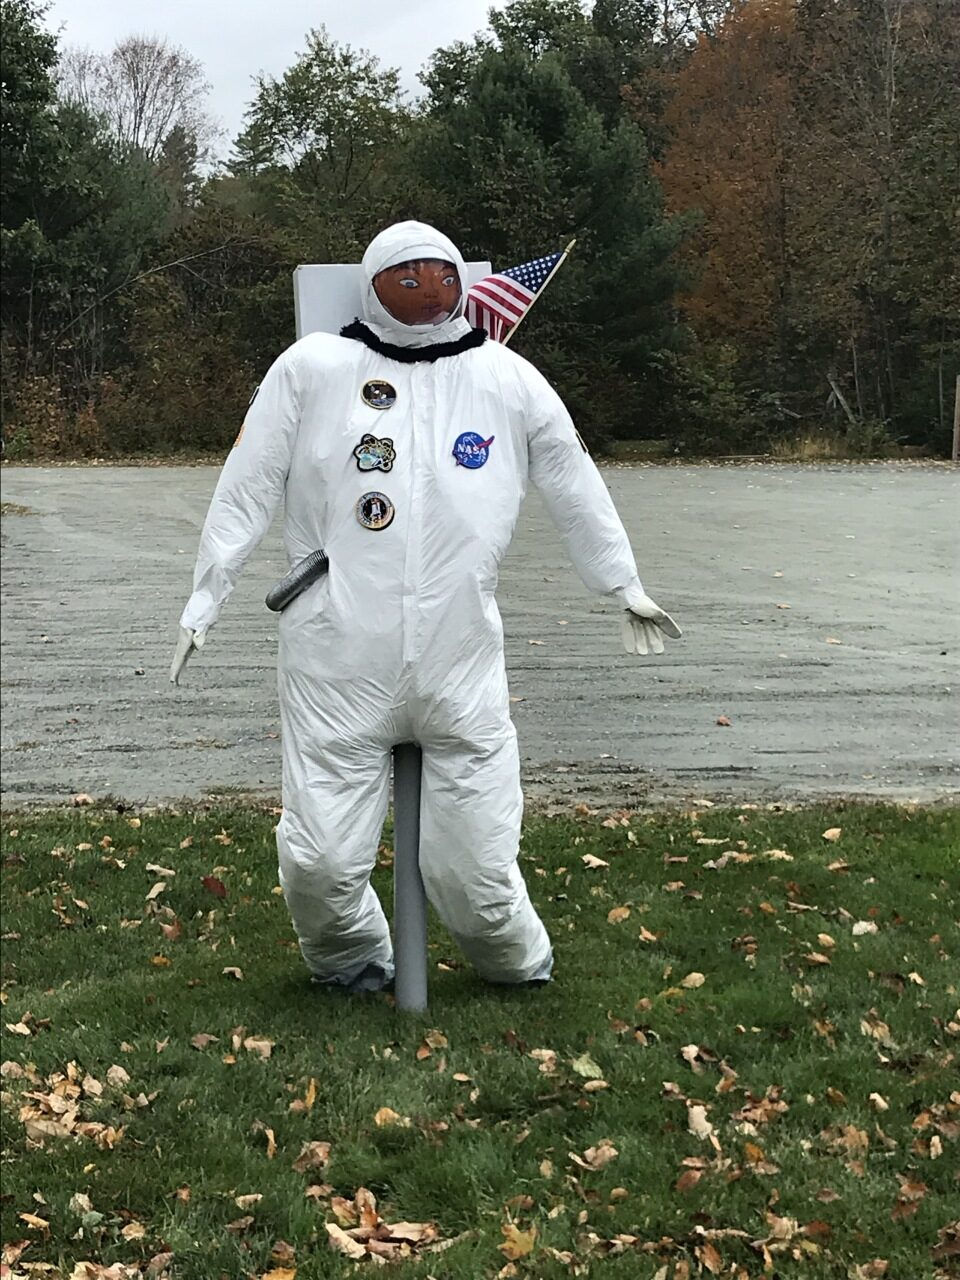 50 Anniversary of the moon landing at 19 Bean Rd